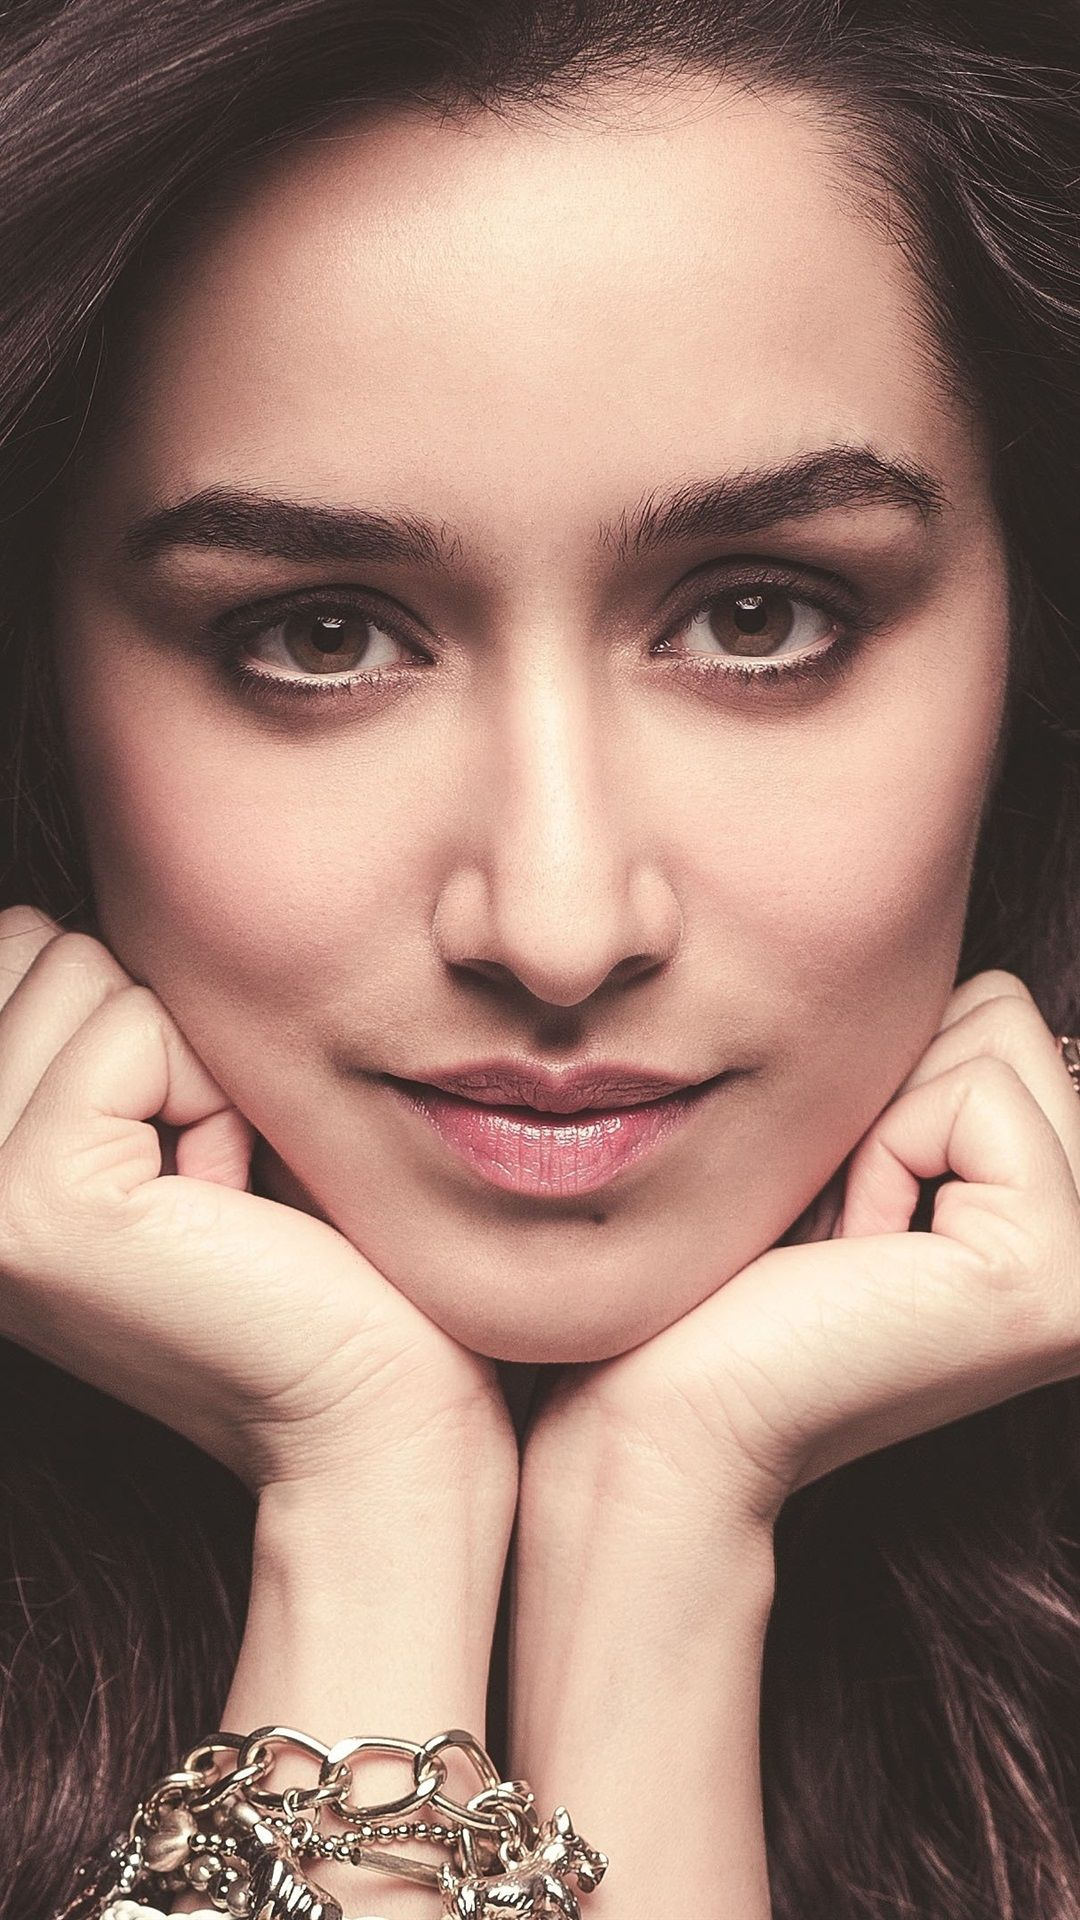 Wallpapers Shraddha Kapoor 03 3840x2160 UHD 4K Picture, Image